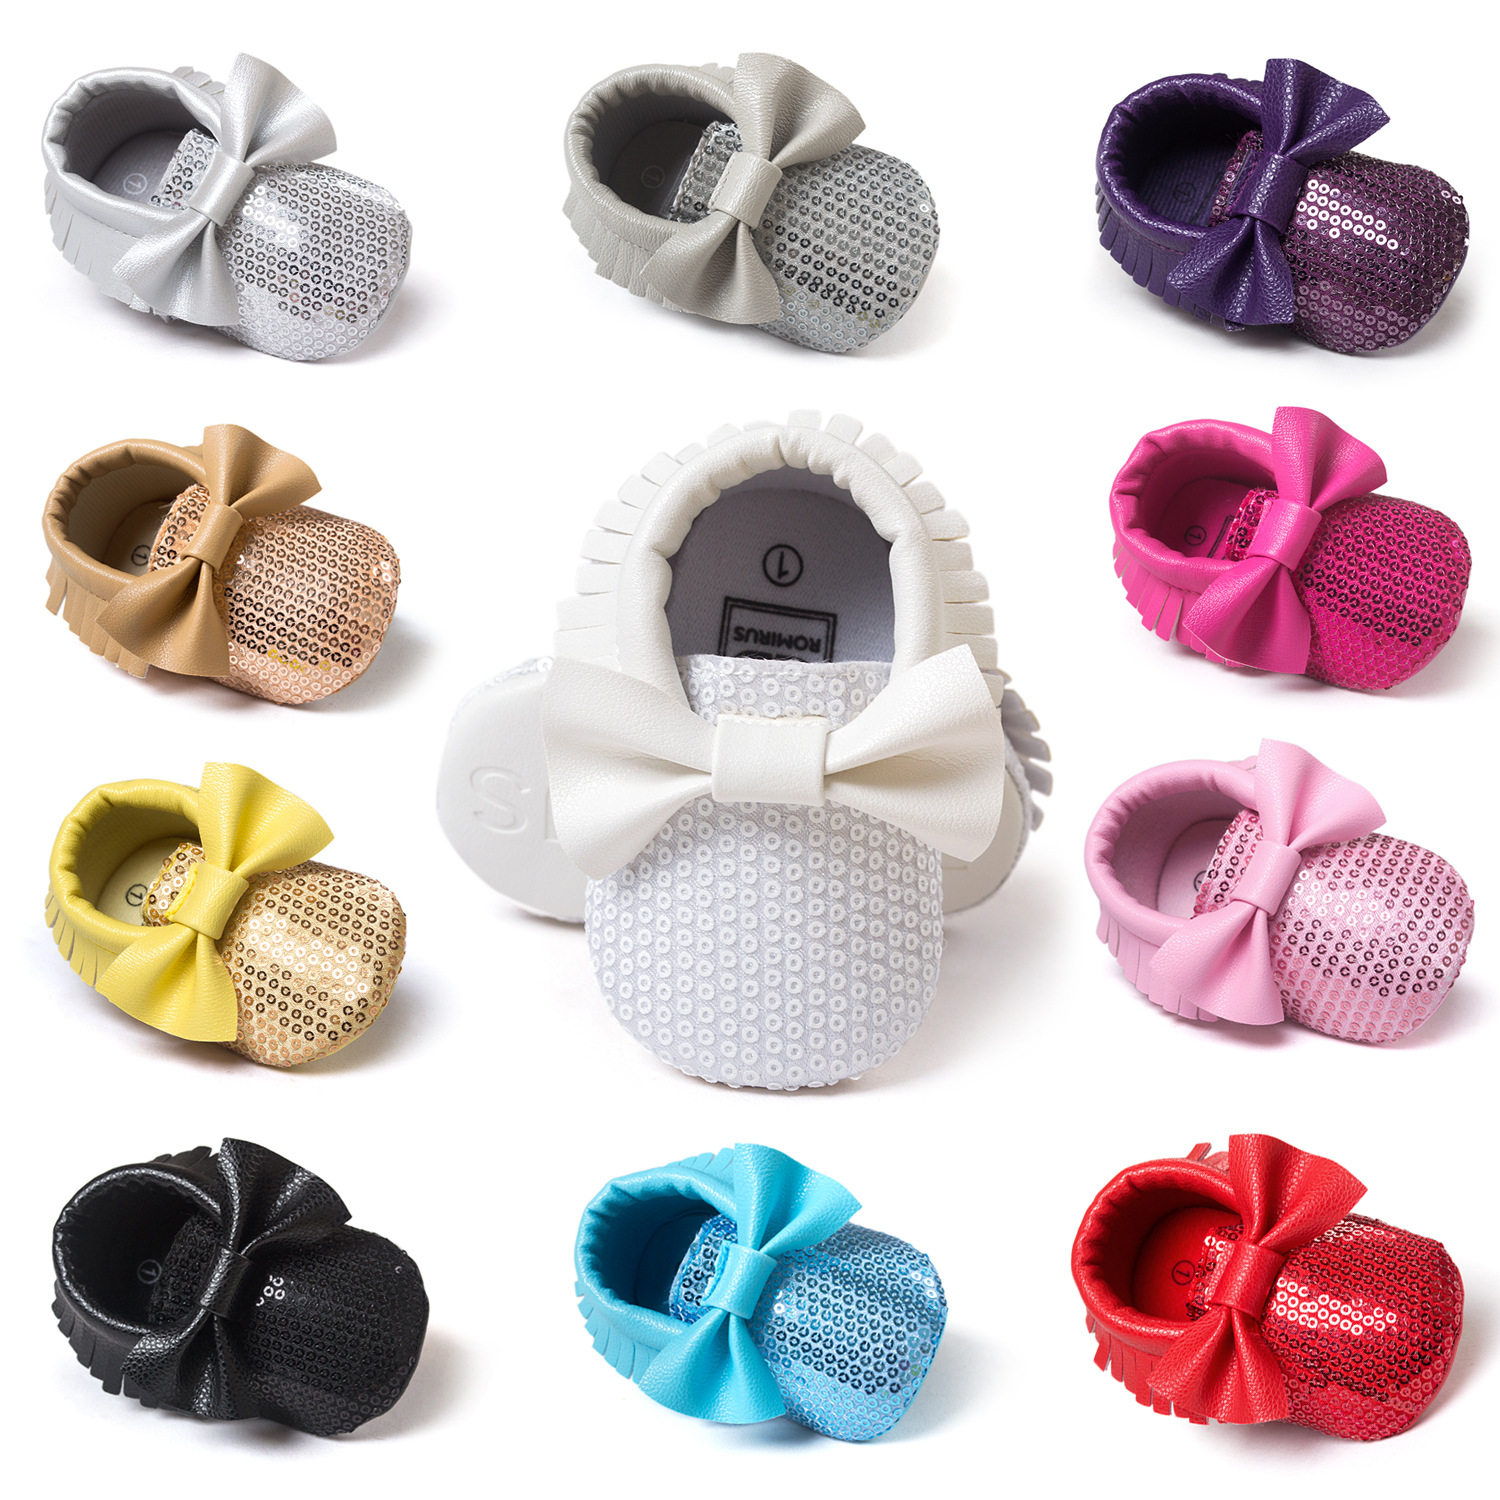 New Spring Baby Girl Shoes Bowknot Tassels Bead Baby Toddler Shoes Newborn Leather Infant Moccasins Newborn Crib Shoes